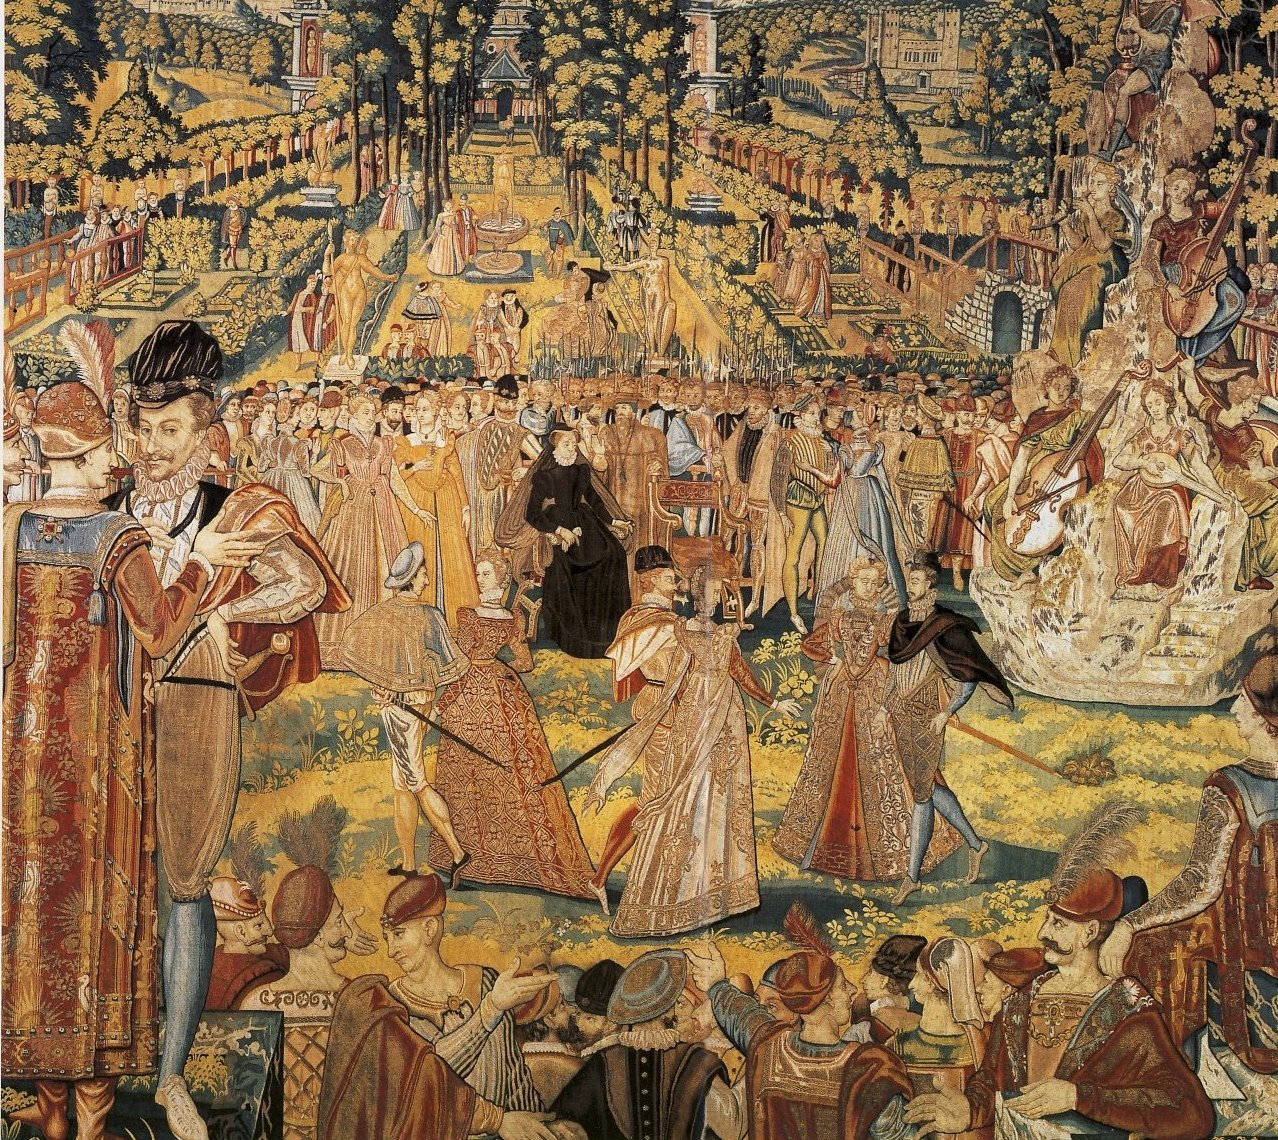 1573 - Valois Tapestry depicting a ball held by Catherine de' Medici at the Tuileries Palace, Paris, in 1573